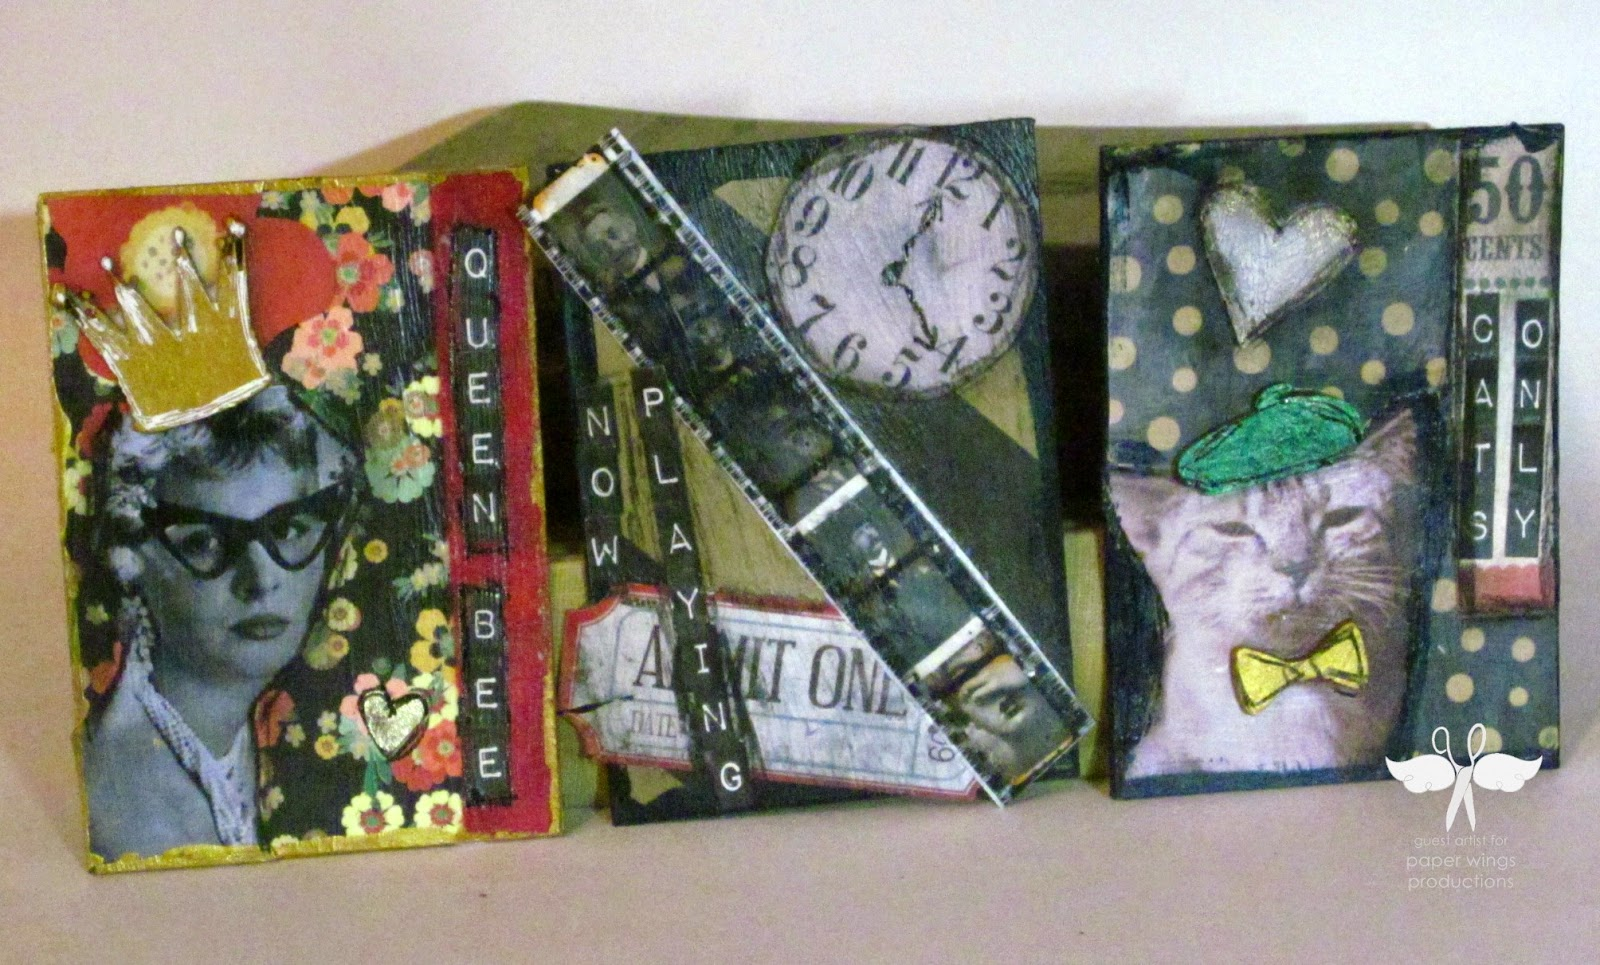 mixed media Monday with Paper Wings Productions, ATC cards created by www.serendipitystudiobycw.blogspot.com